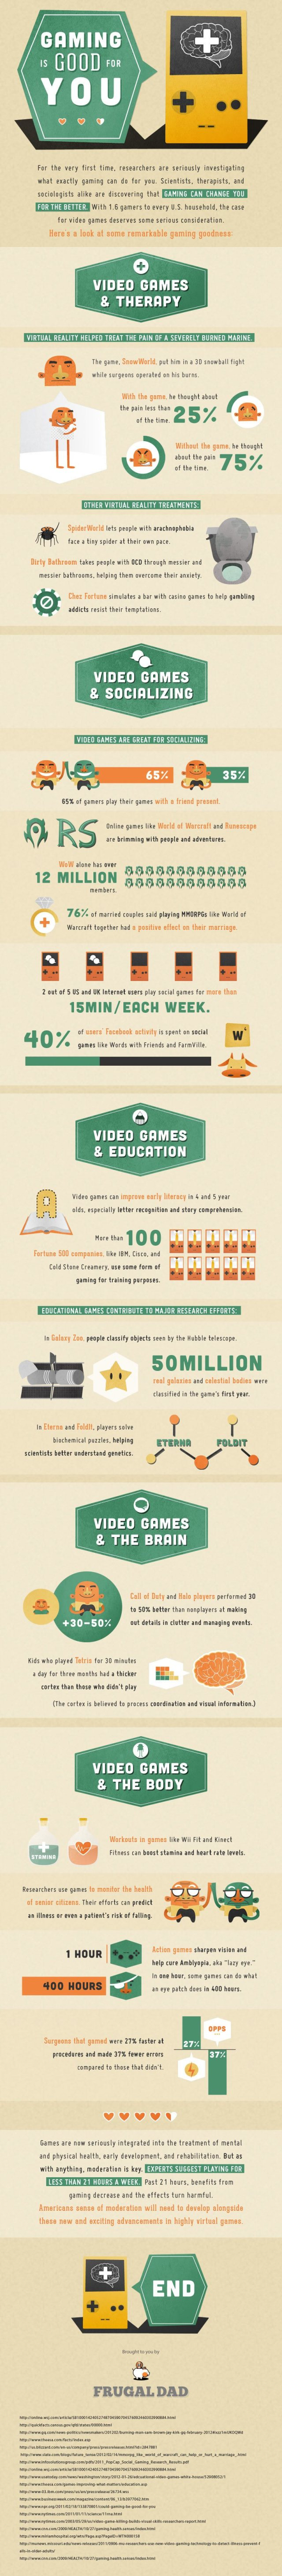 The-Benefits-of-Gaming-Infographic